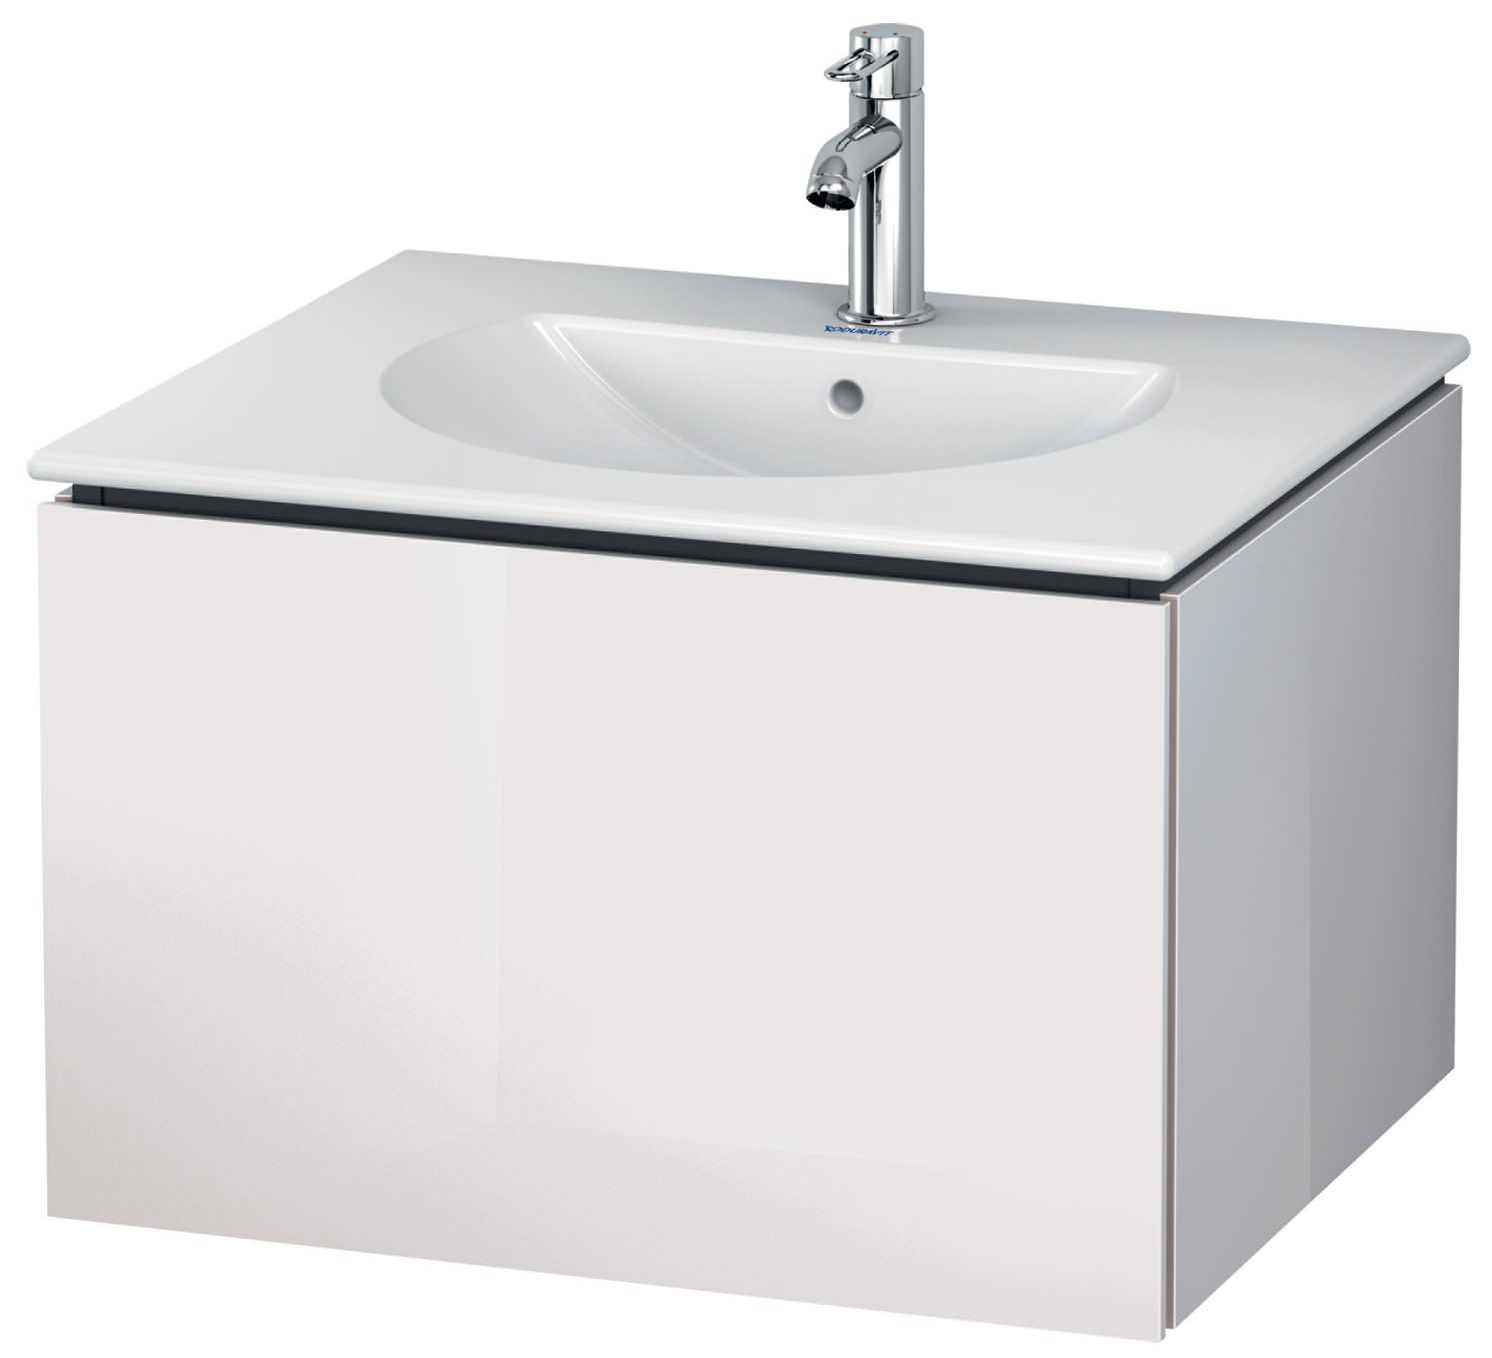 duravit l cube 620mm wall mounted vanity unit with darling new basin. Black Bedroom Furniture Sets. Home Design Ideas